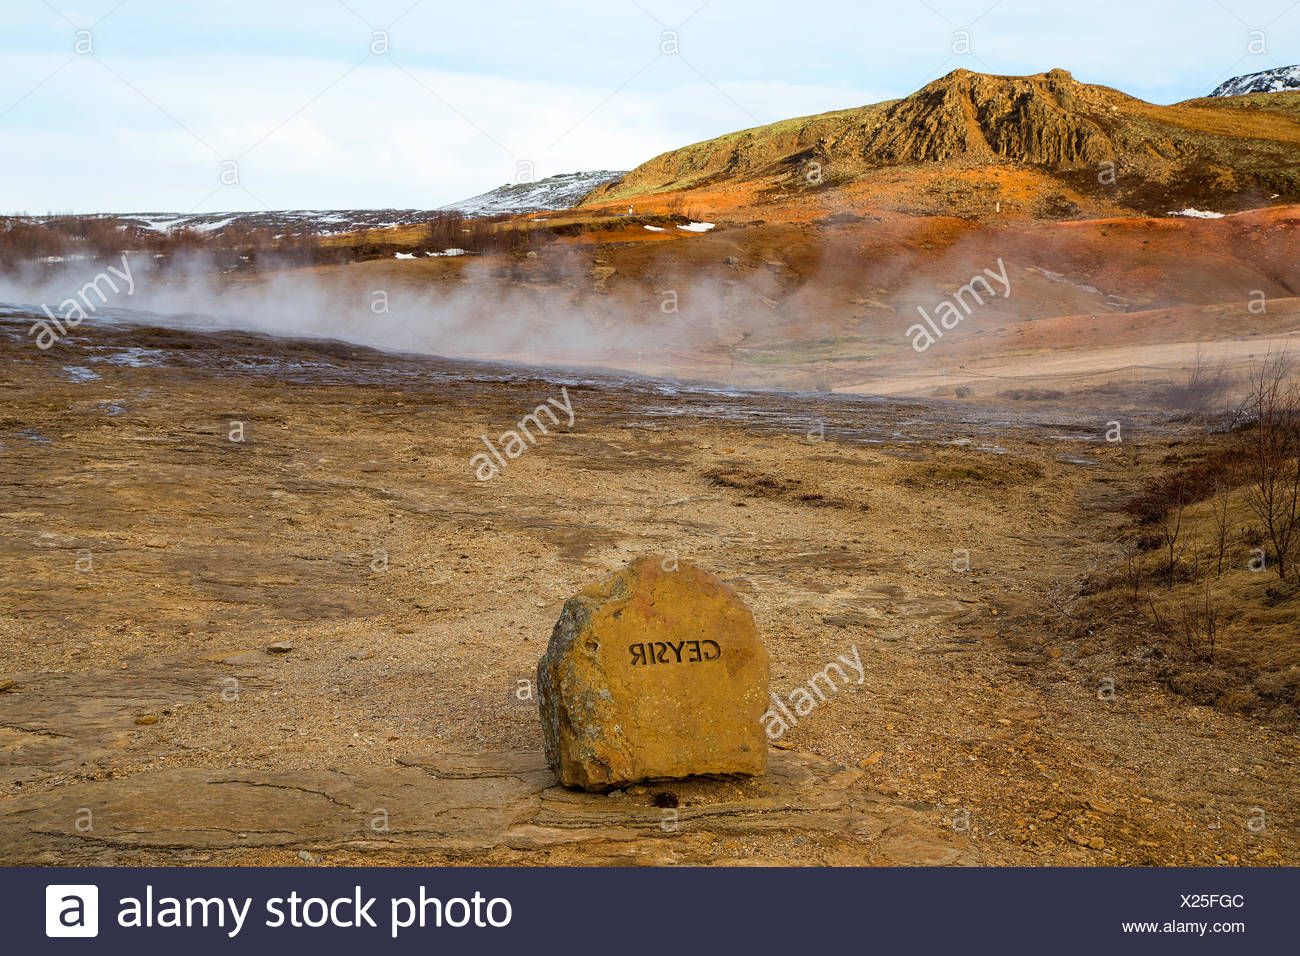 The Geysir geyser in Haukadalur Valley, Iceland, is the oldest known geyser. Stock Photo